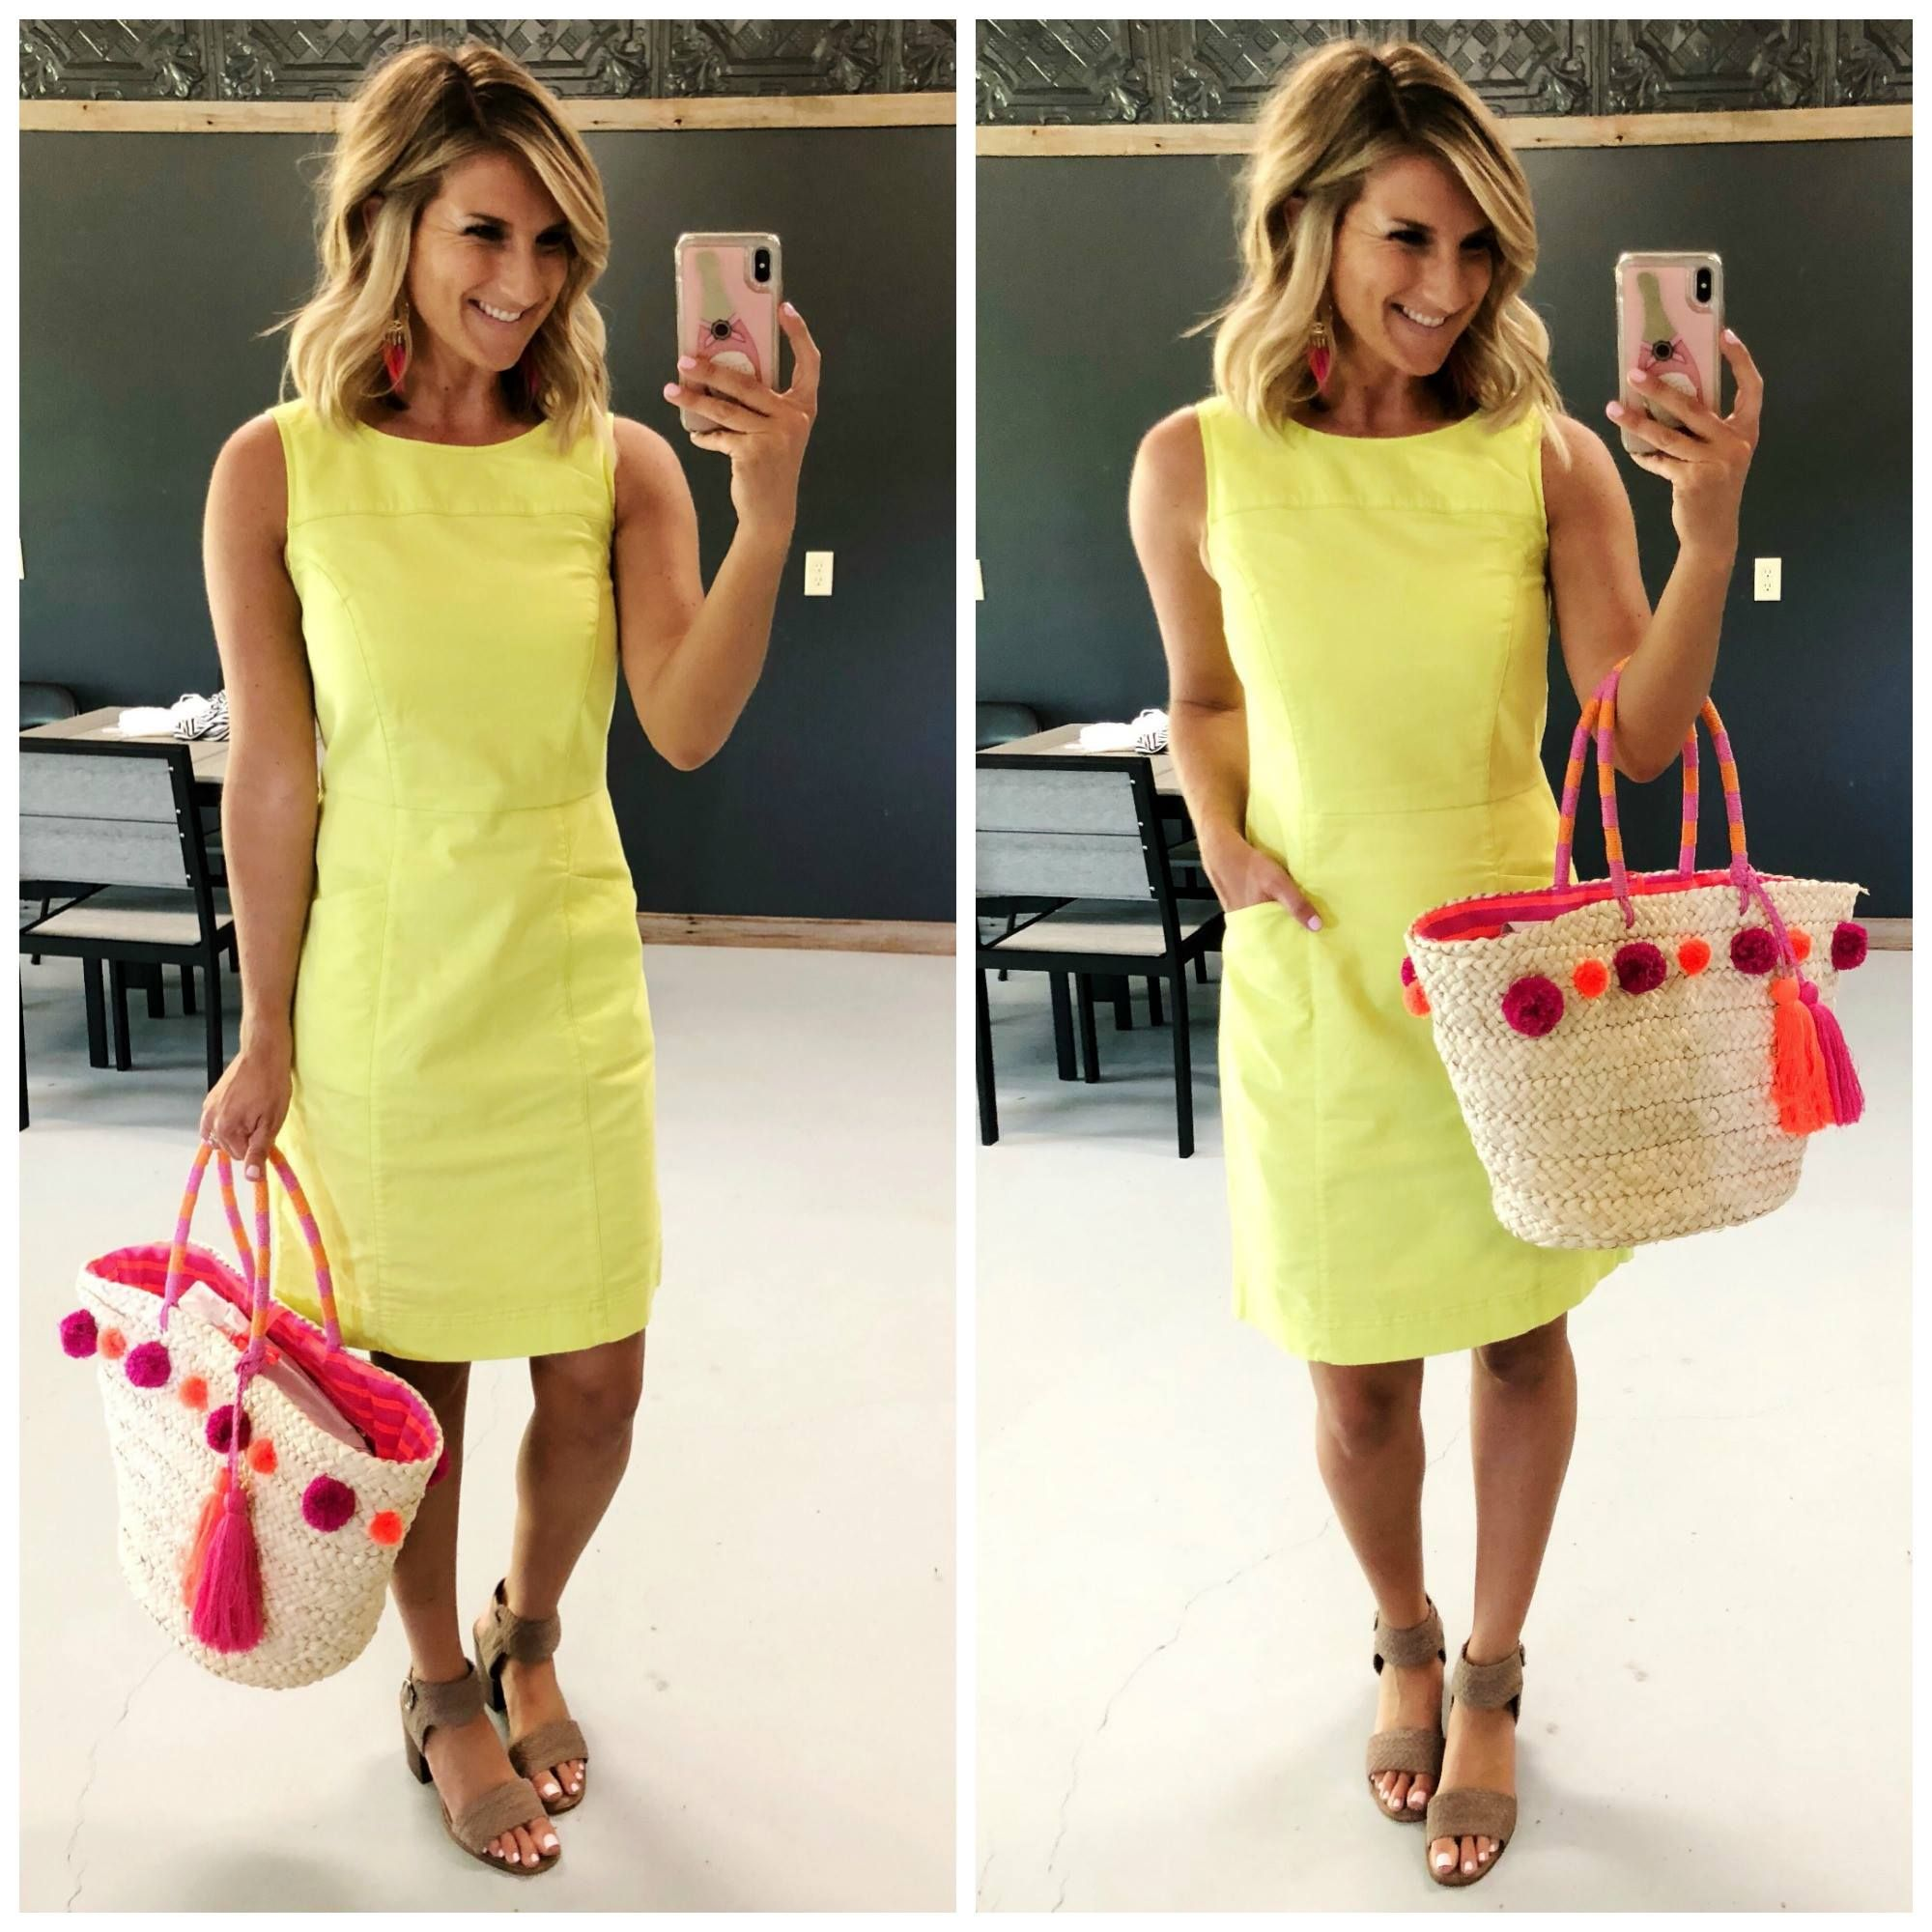 12 Summer Outfits To Wear For Work And Play Living In Yellow Dresses For Work Fashion Stylish Women Fashion [ 2000 x 2000 Pixel ]